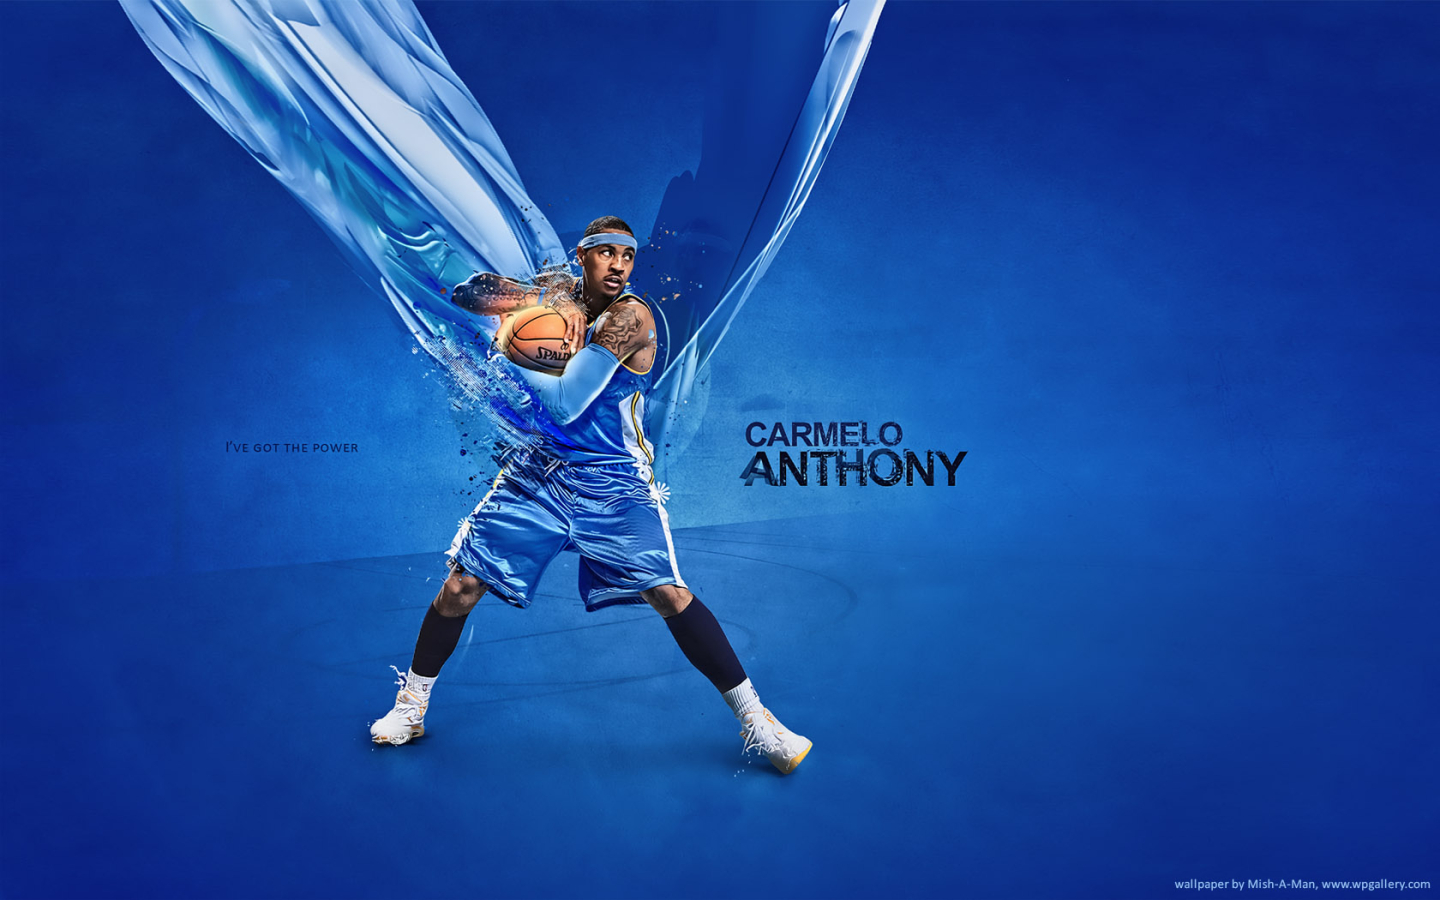 Carmelo Anthony for 1440 x 900 widescreen resolution